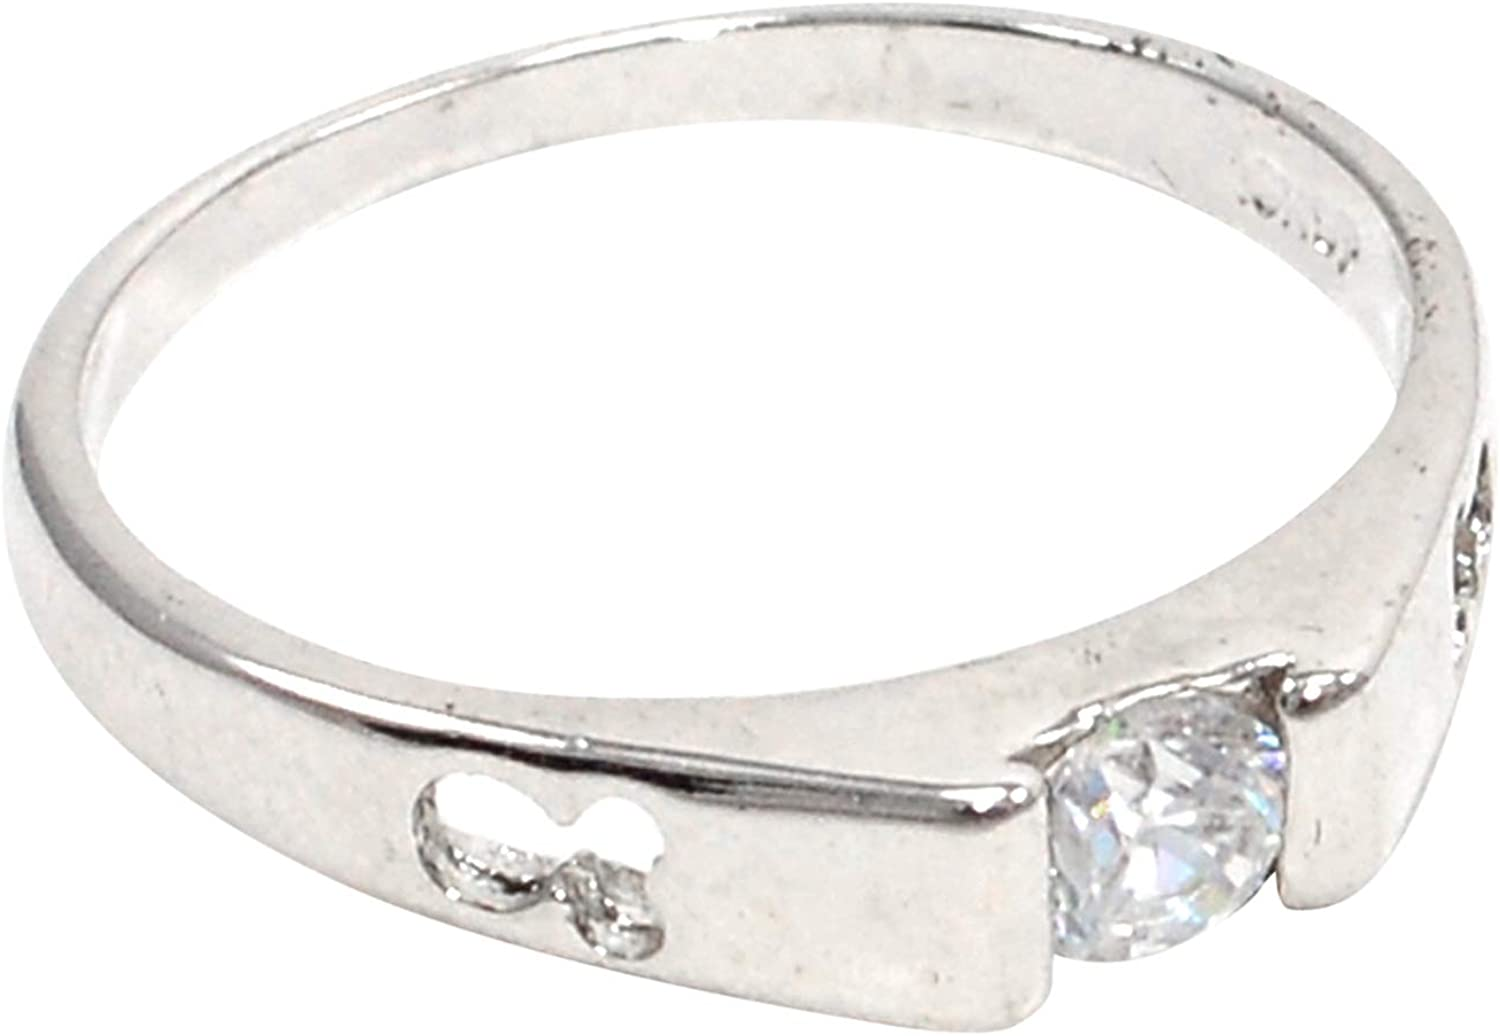 Saamarth Impex Cubic Zircon 925 Silver Plated Ring Sz 9 PG-108125